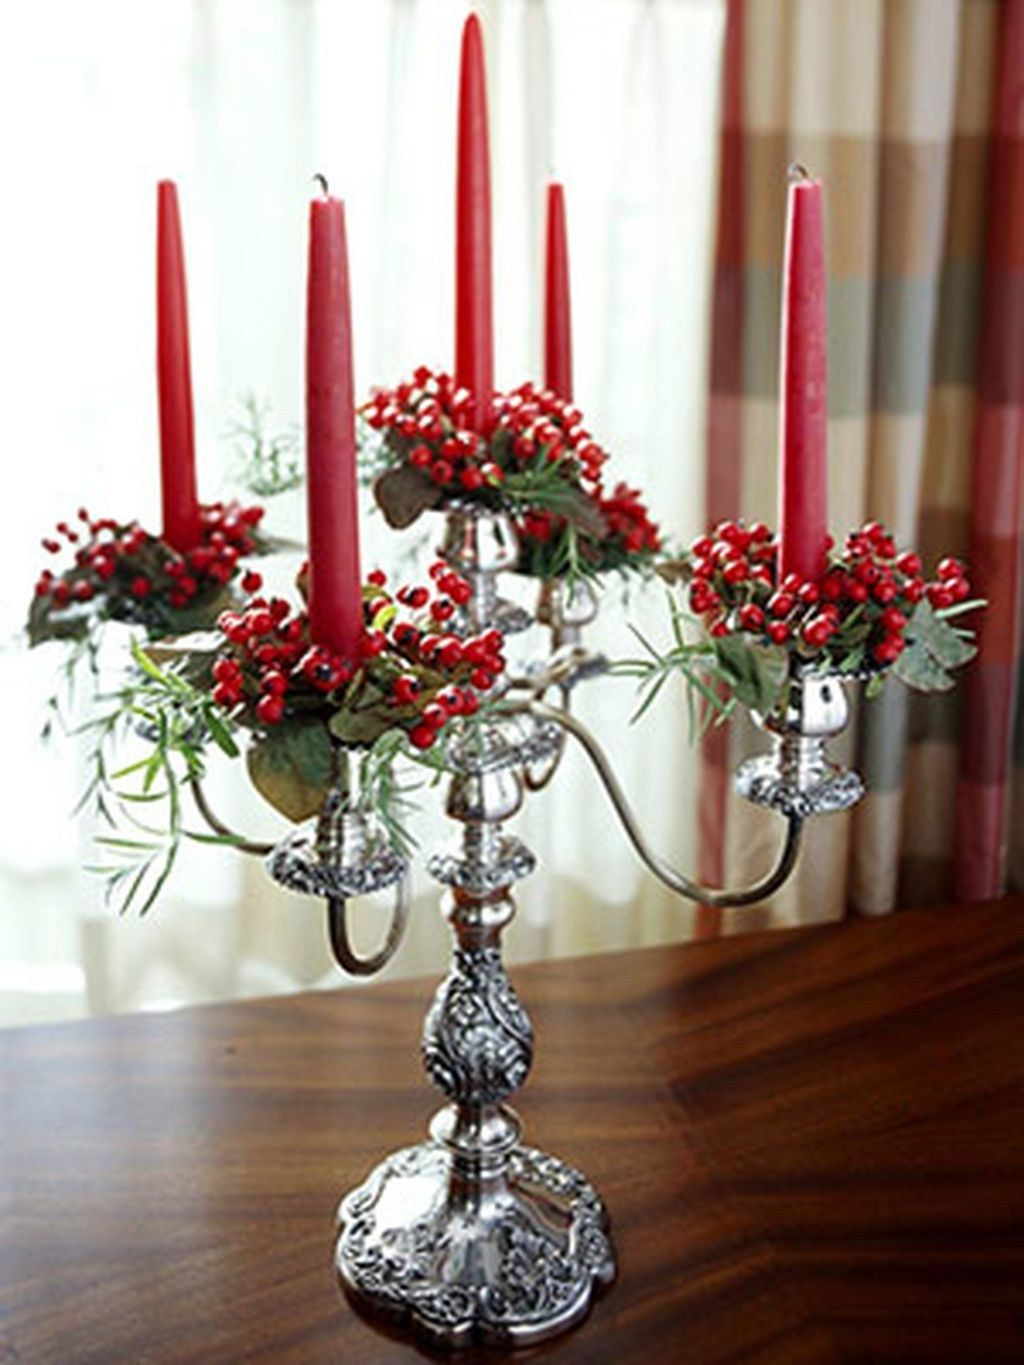 Easy And Simple Christmas Table Centerpieces Ideas For Your Dining Room 42 Christmas Table Centerpieces Christmas Candle Decorations Christmas Centerpieces